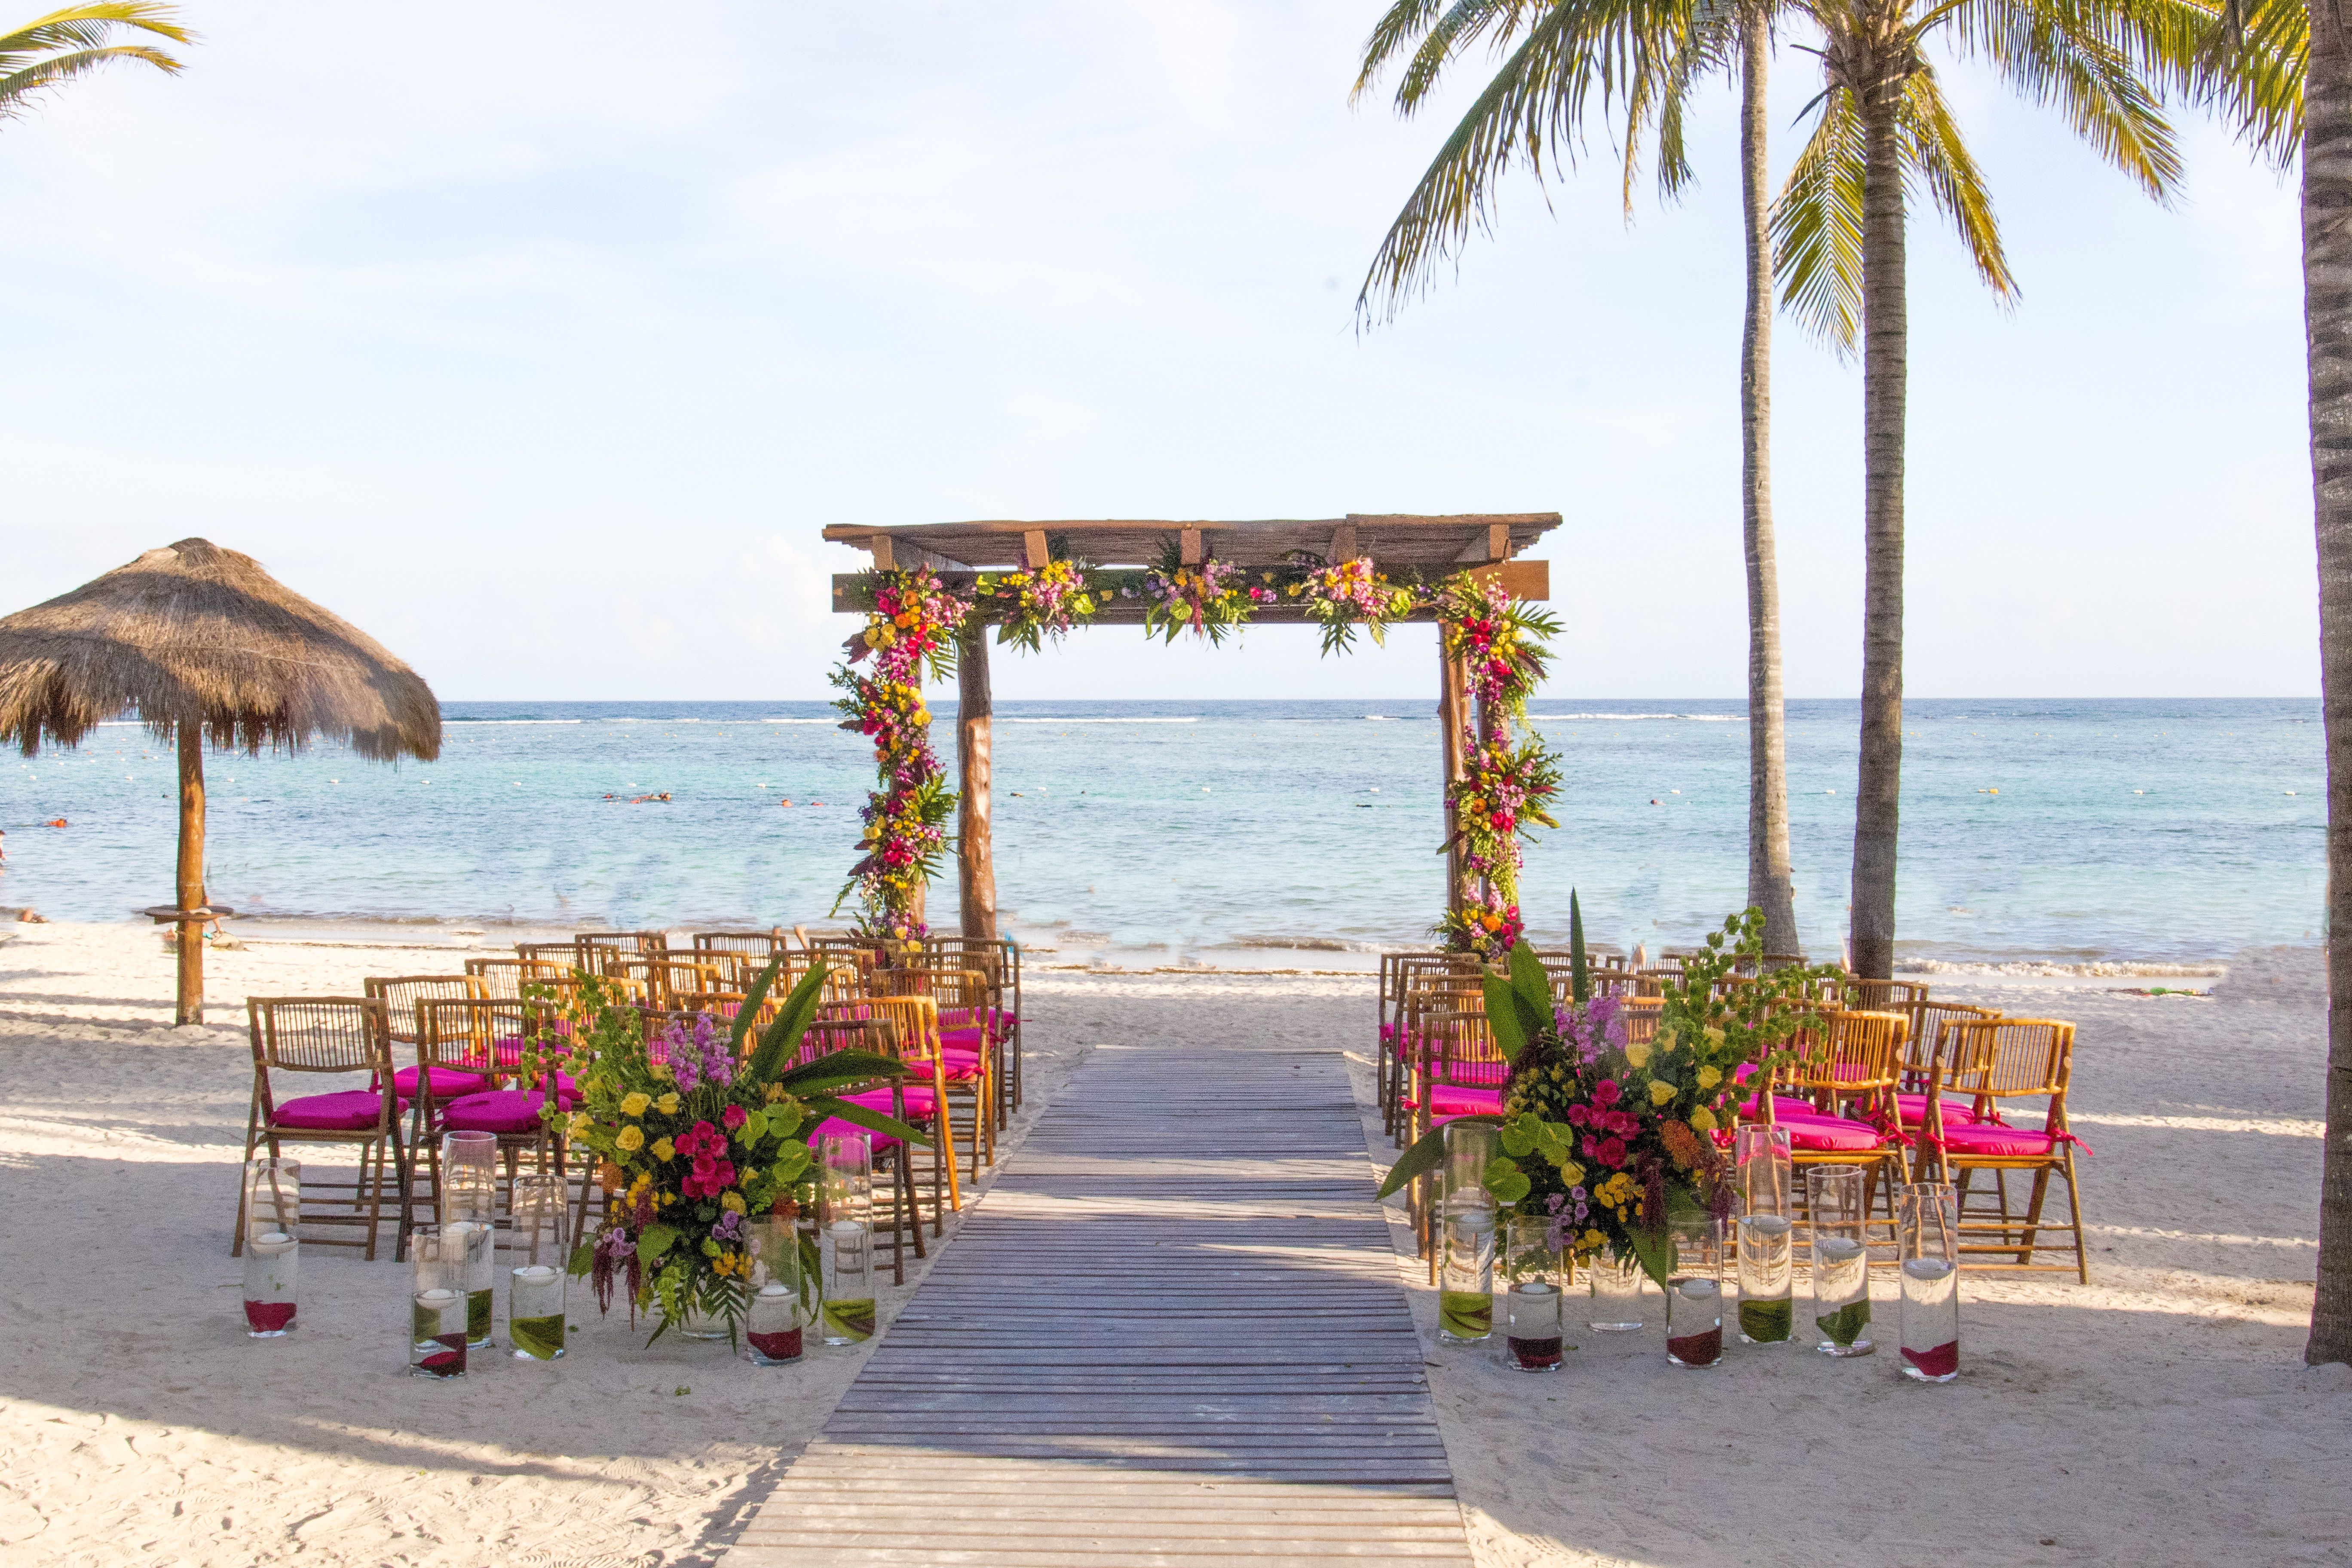 Tropical Fruit Platter For A Beach Wedding: Tropical Beach Wedding Here At Secrets Akumal Riviera Maya